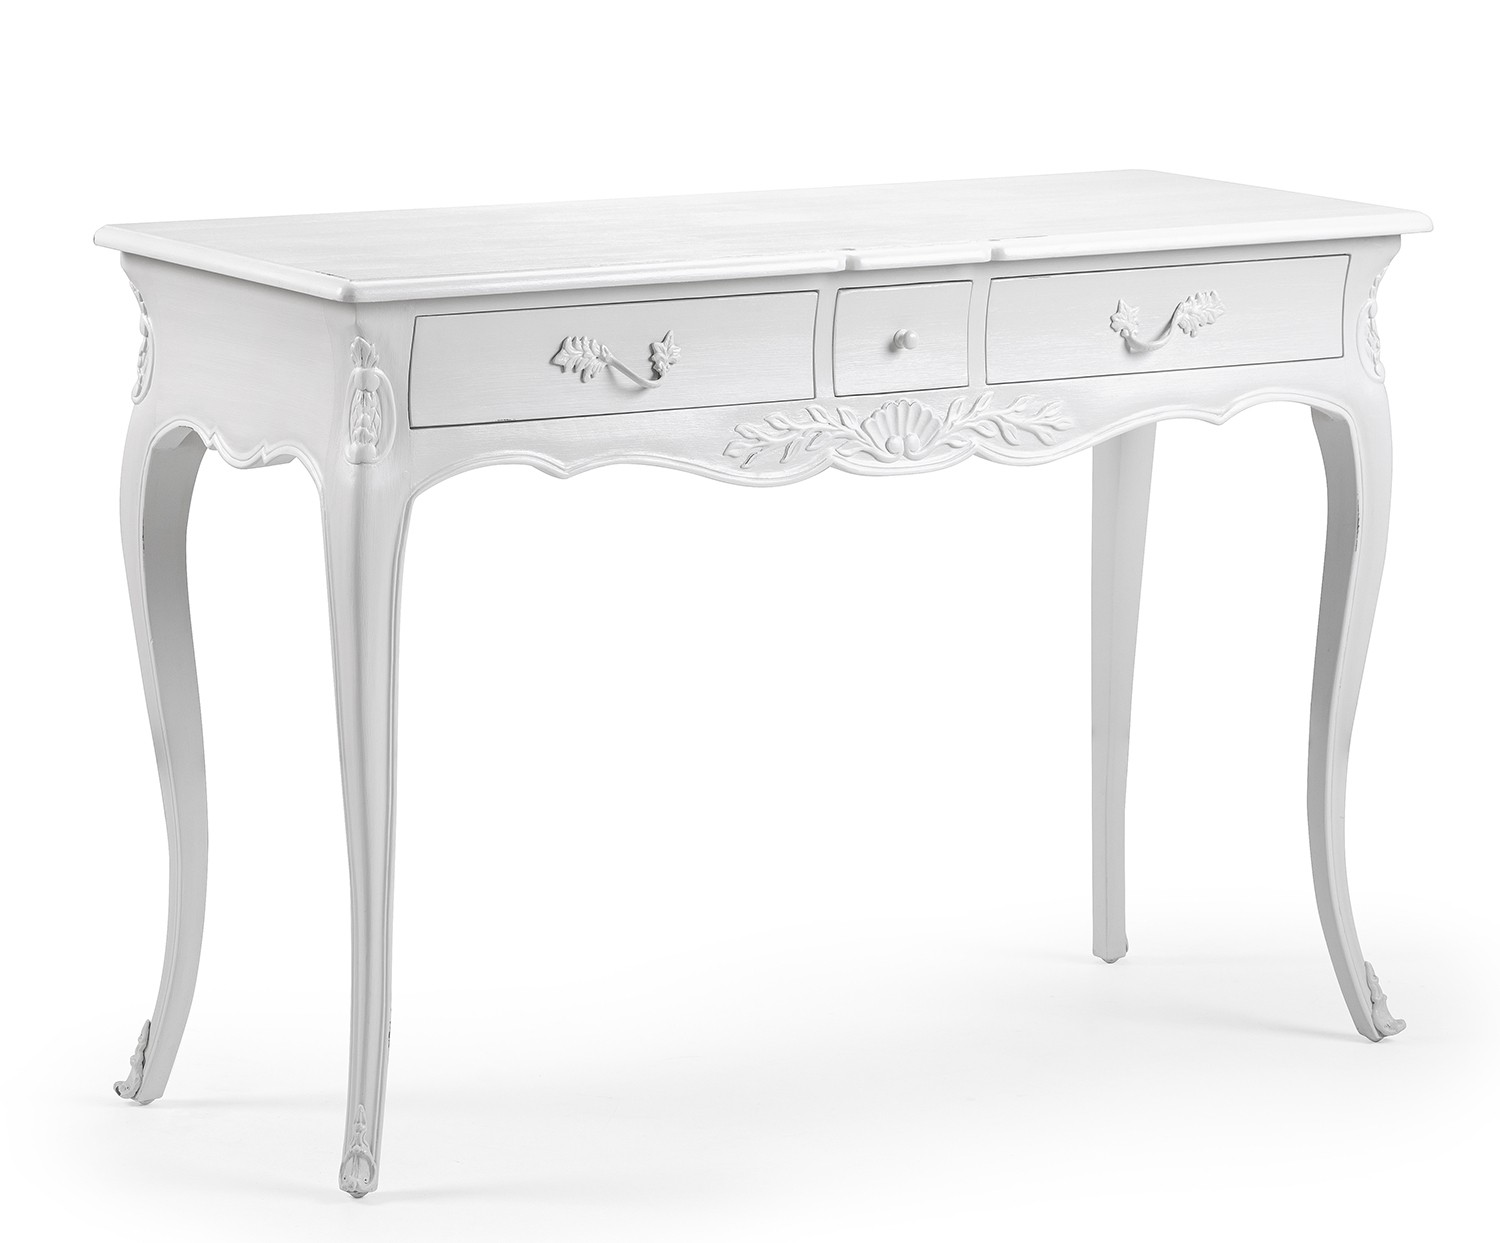 Picture of: Louis French Console Hall Table French Carved Console Table White Painted French Hall Table With 2 Drawers